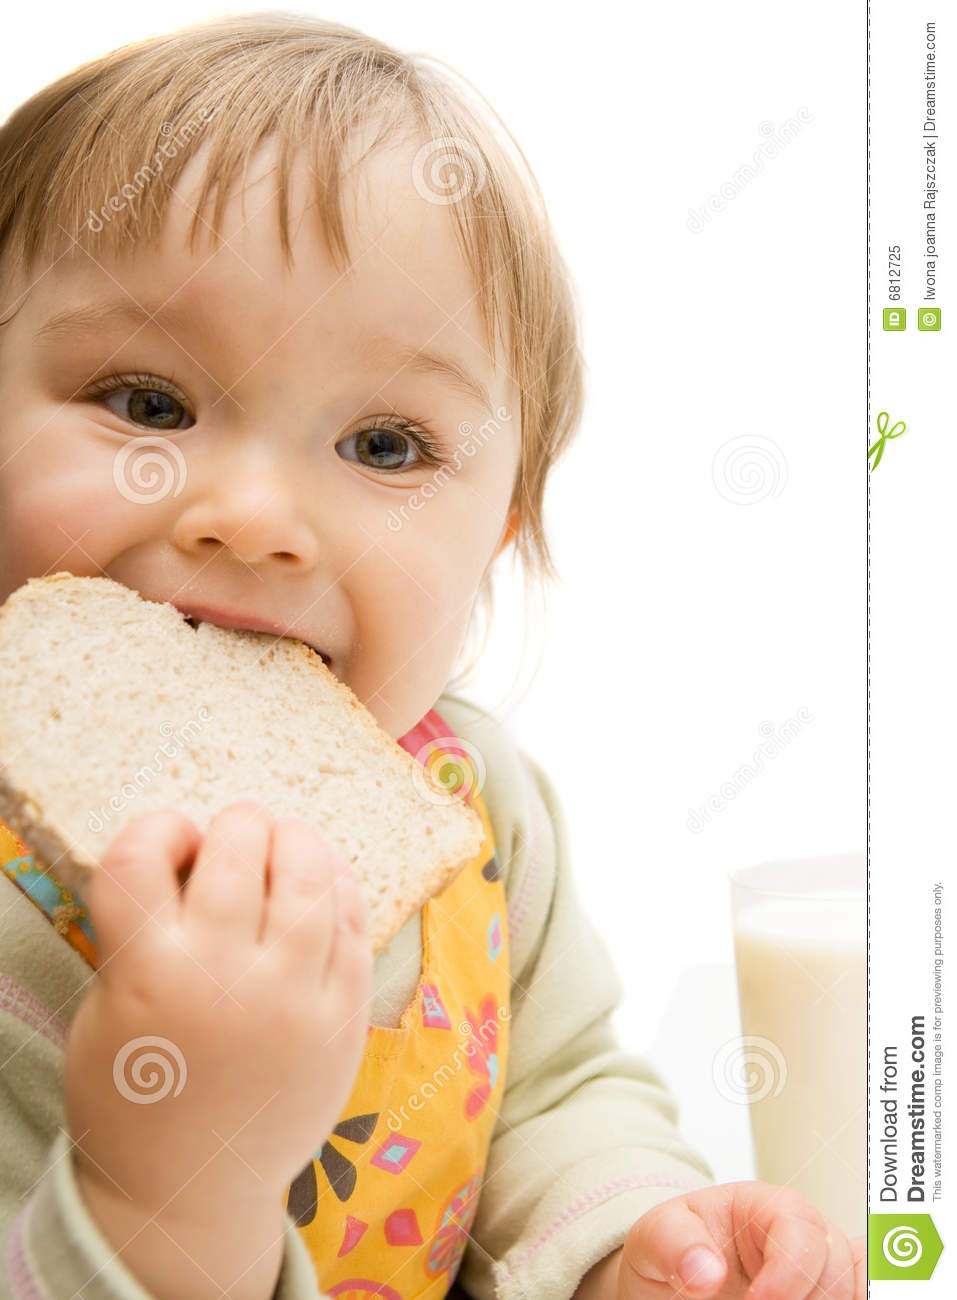 Eating Baby Royalty Free Stock Photo - Image: 6812725